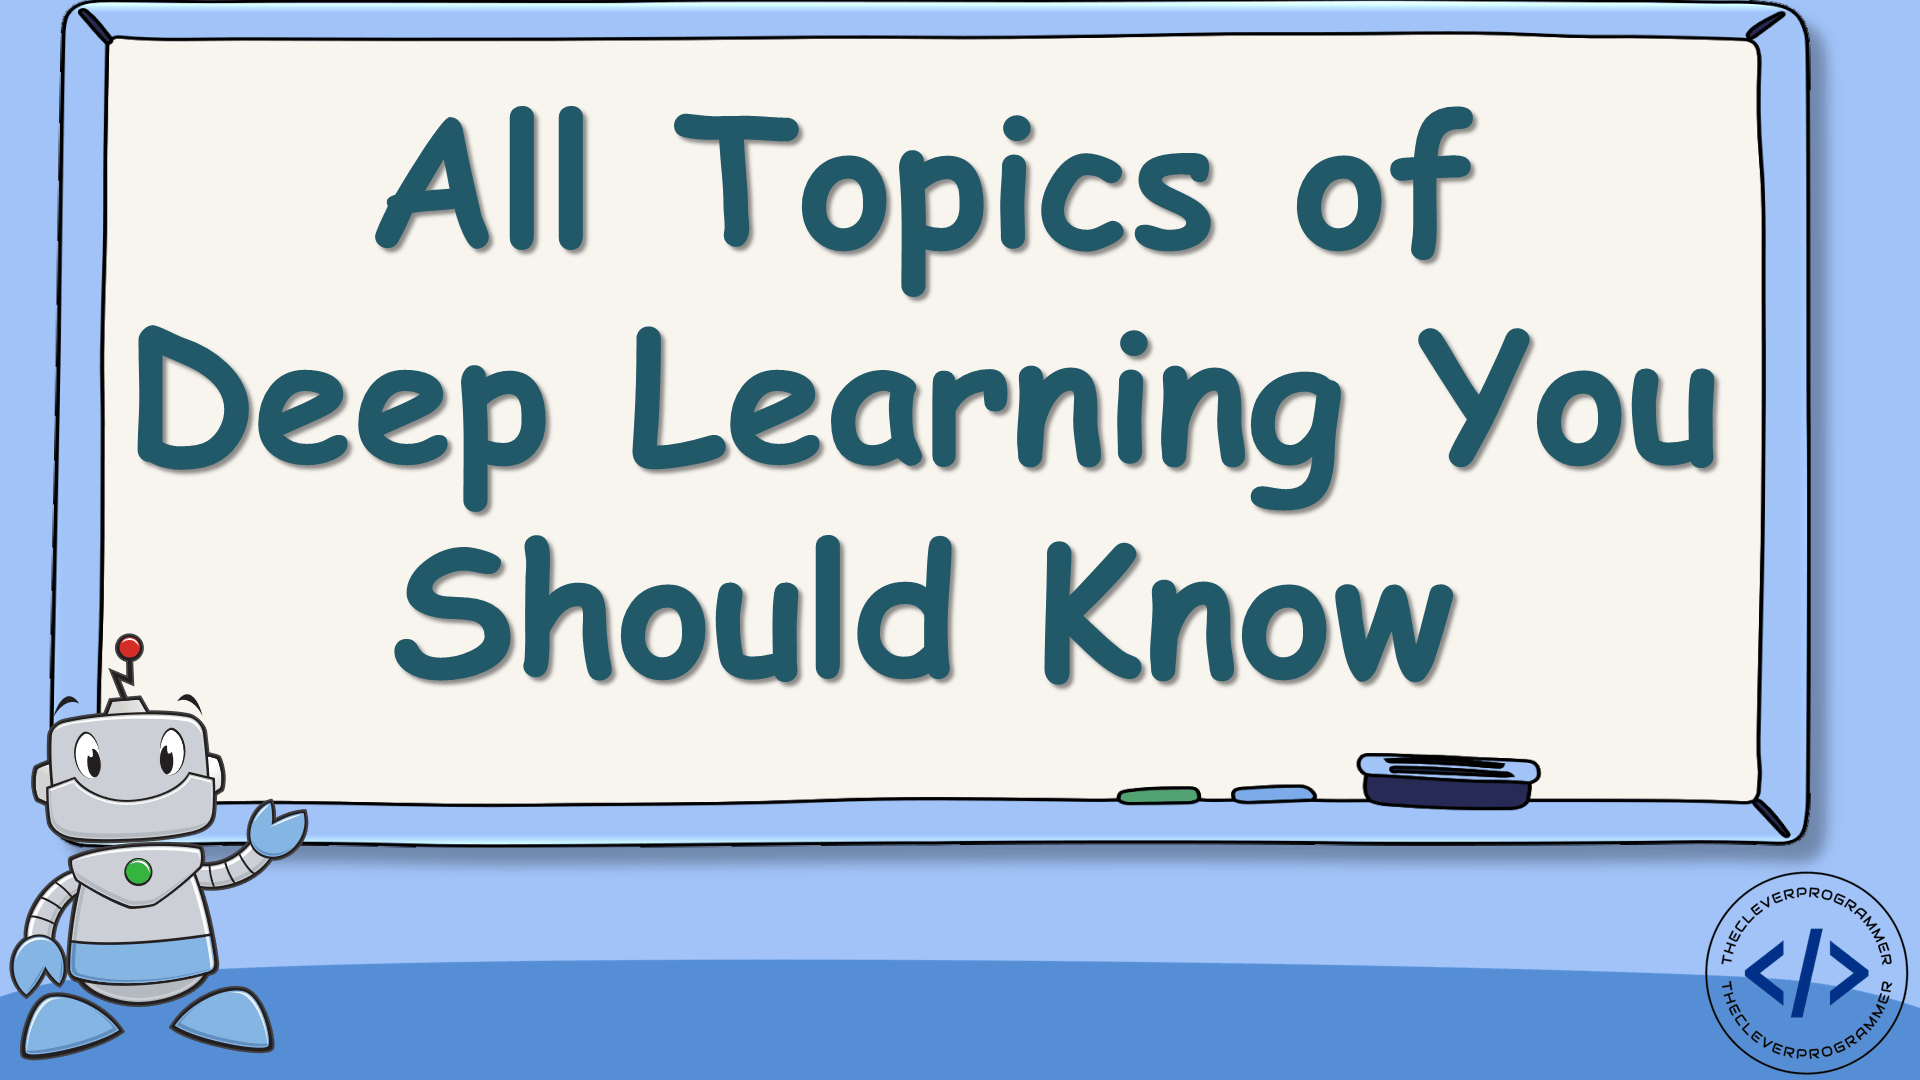 All Topics of Deep Learning